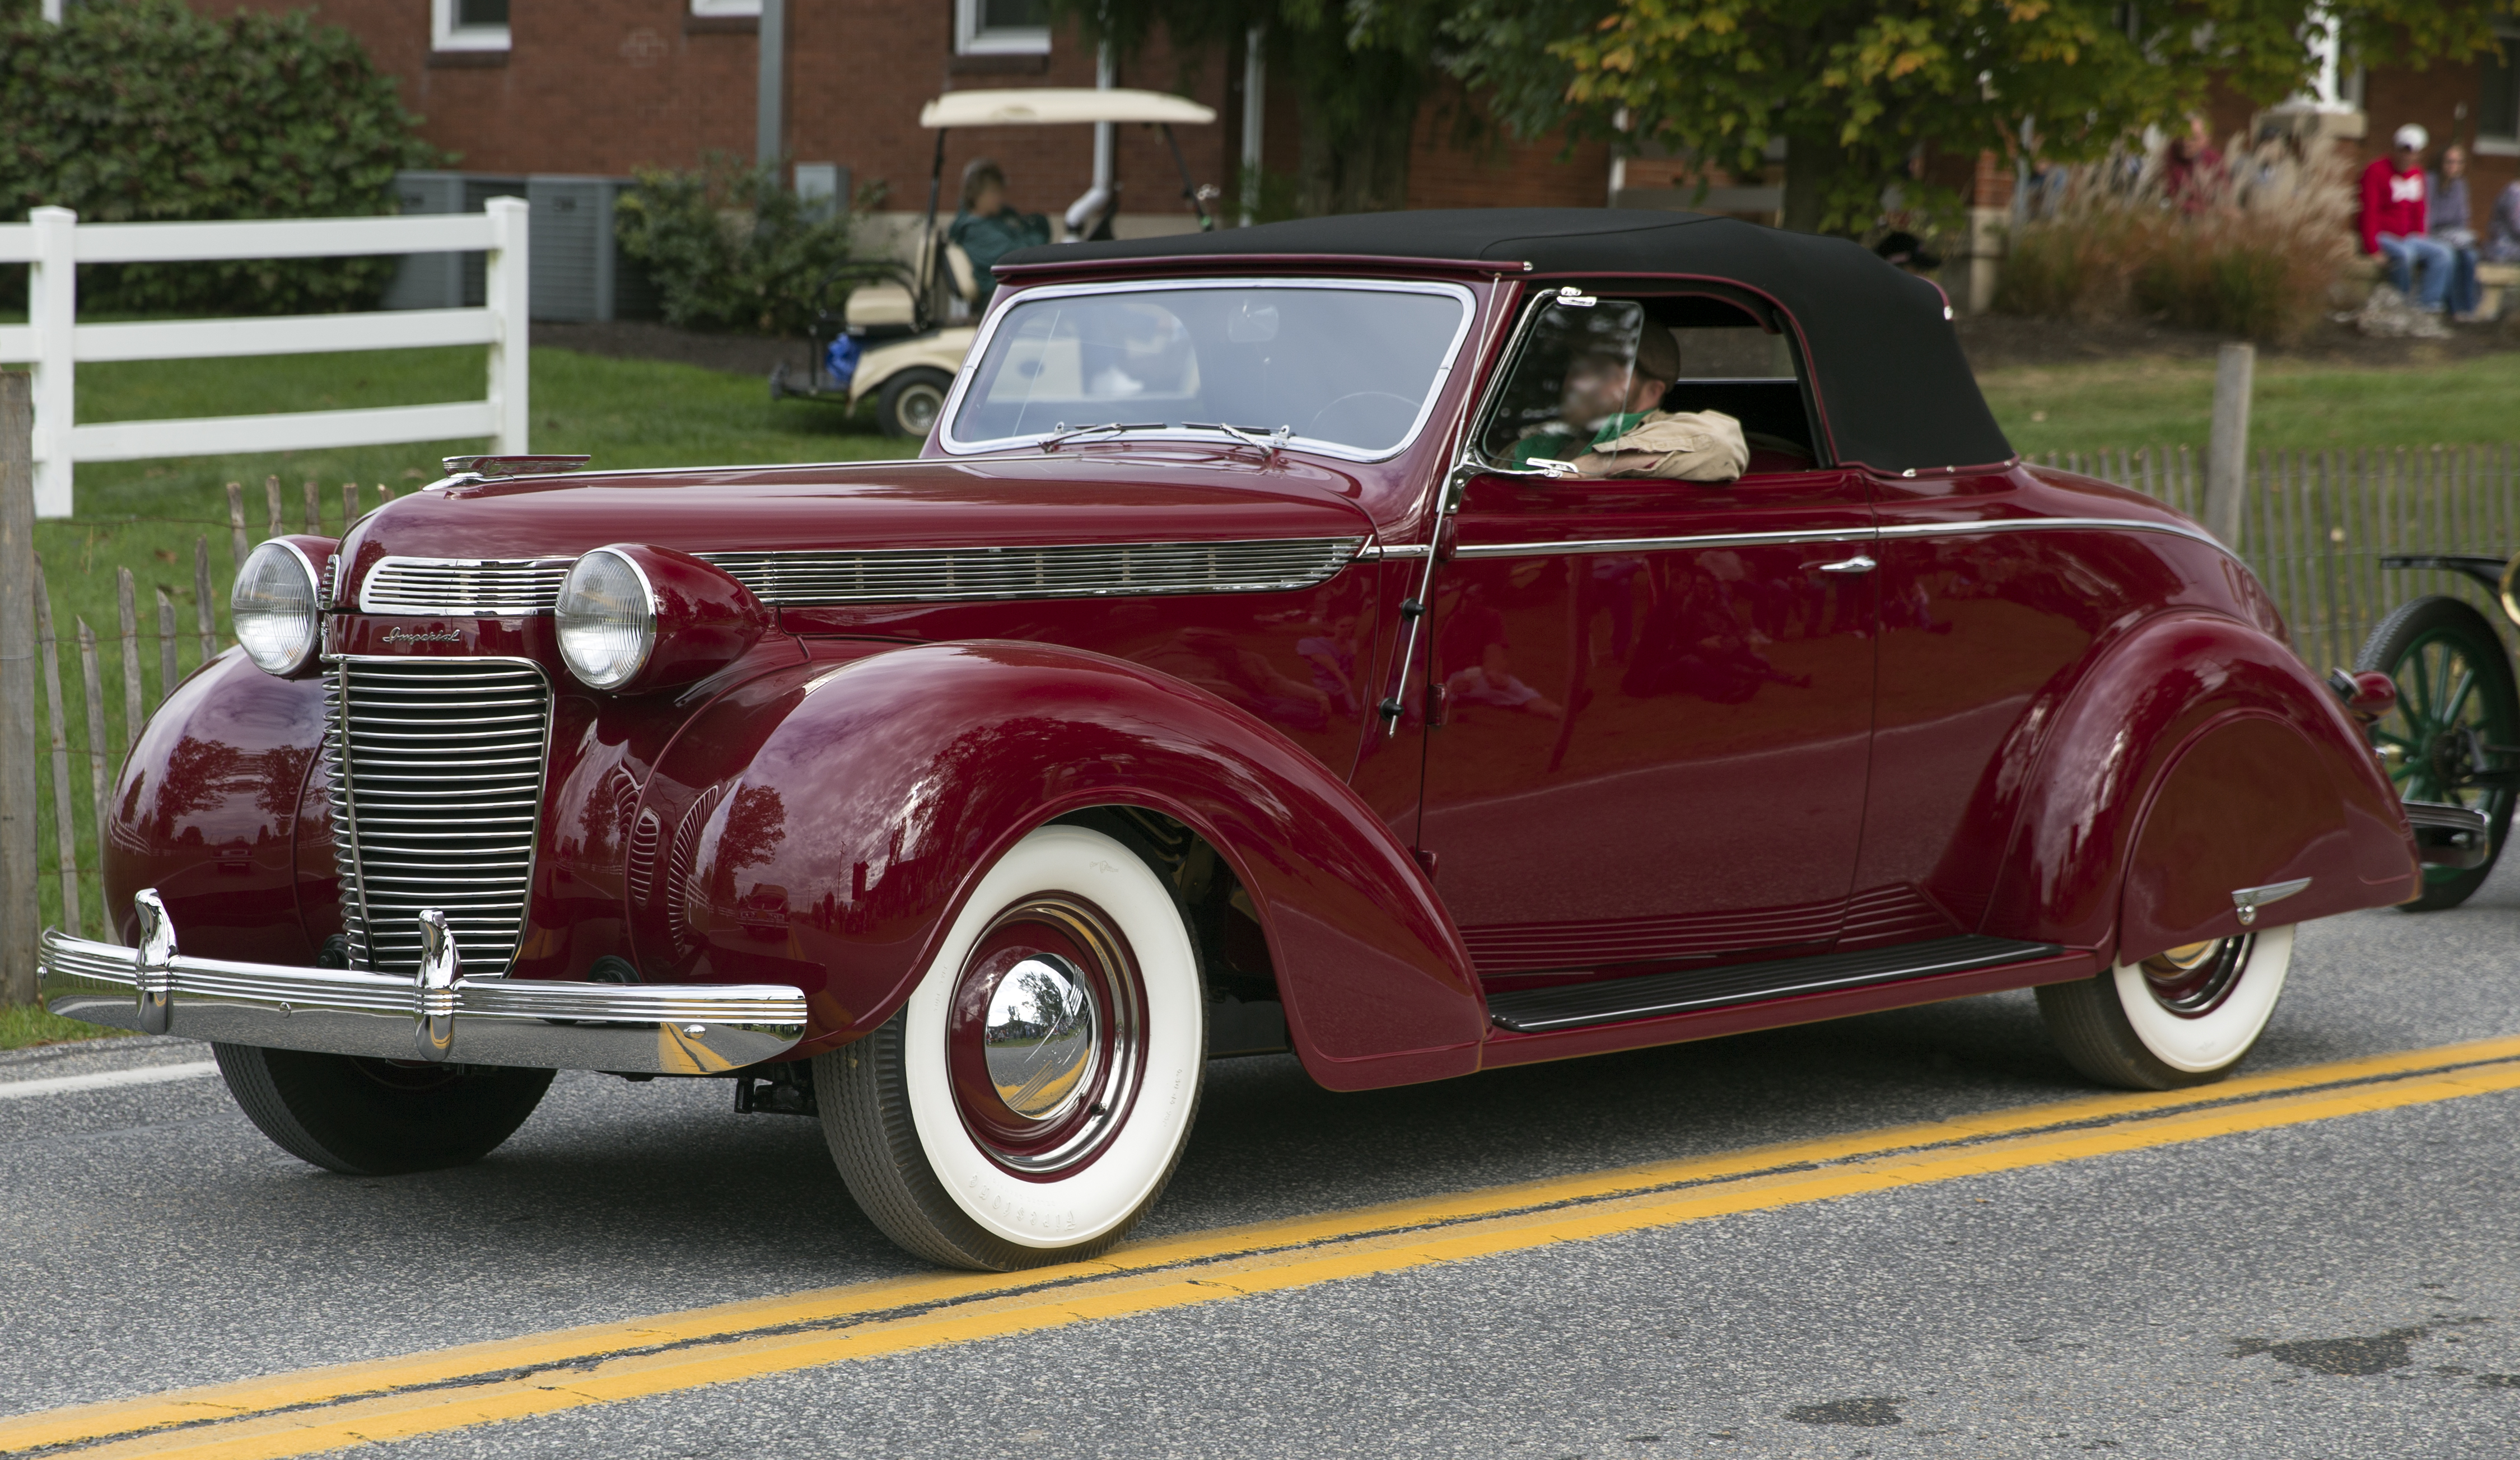 File:1937 Chrysler Imperial Convertible Coupe (C-14 ...